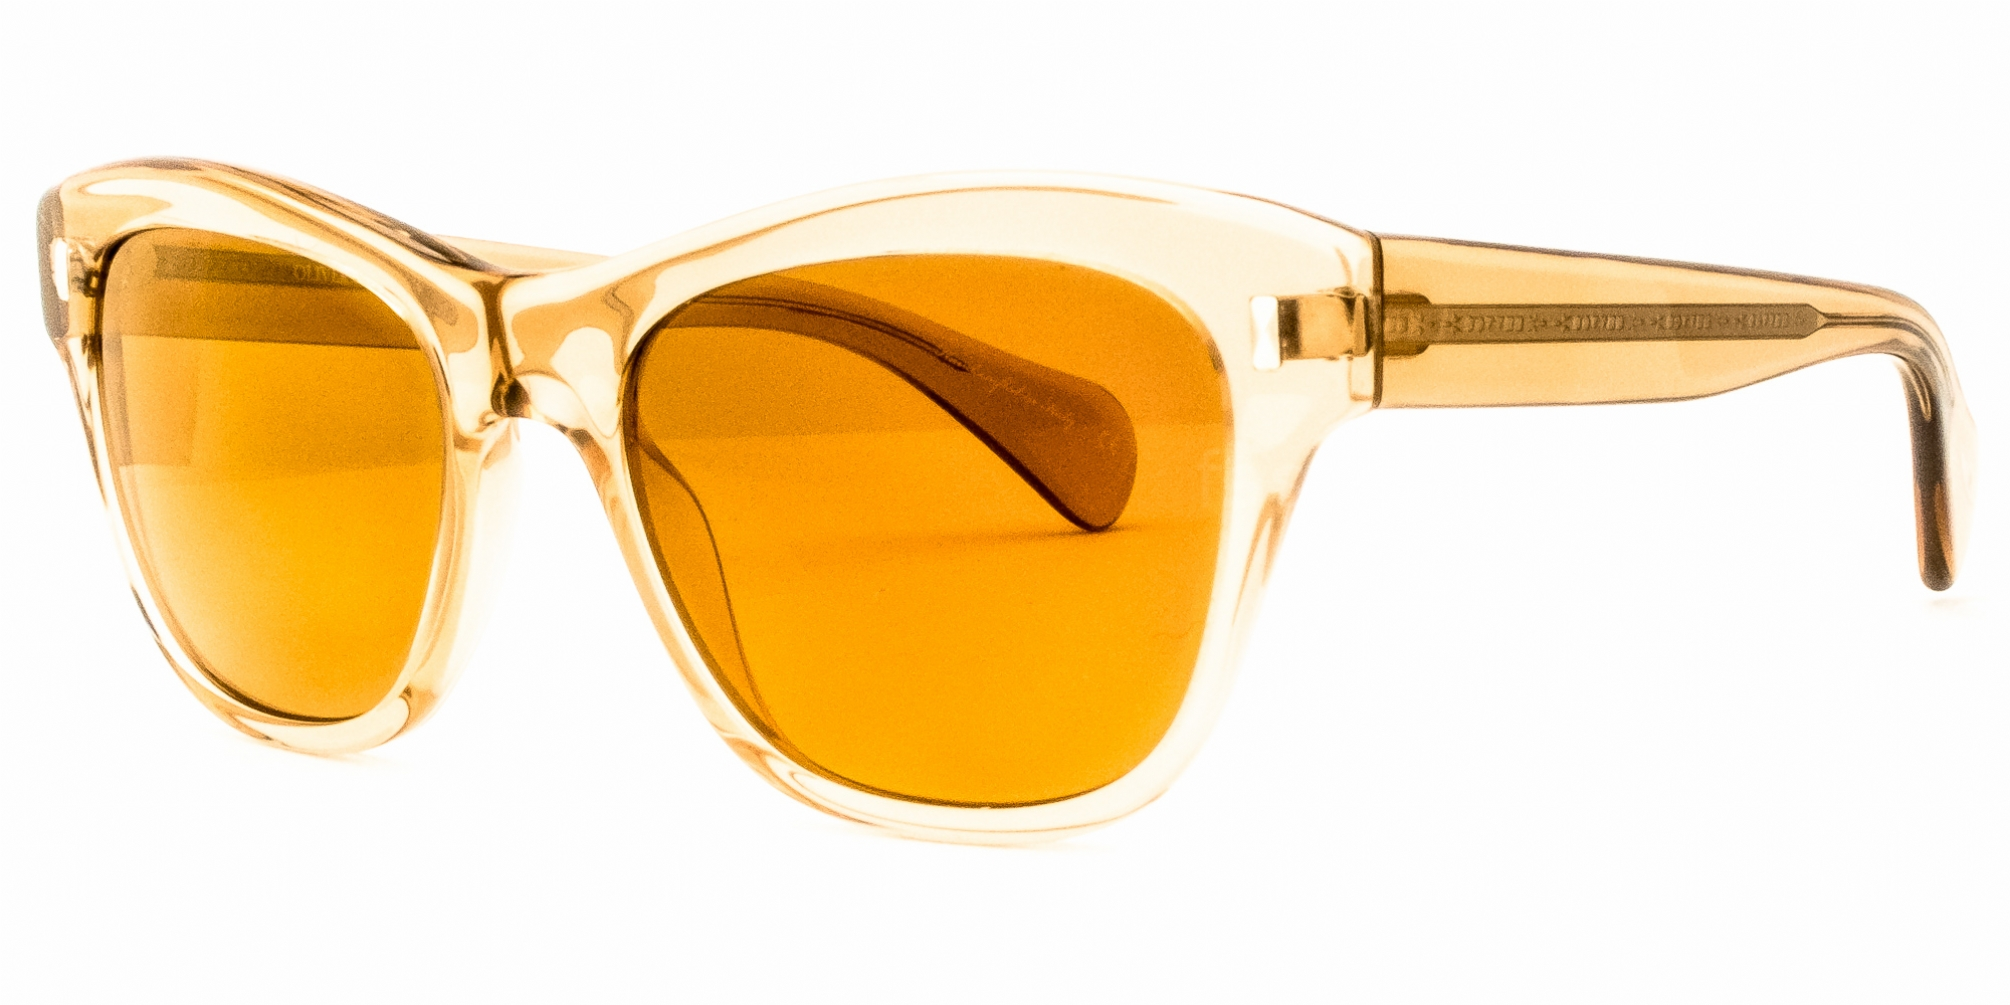 6c242e635 Oliver Peoples Sofee Sunglasses